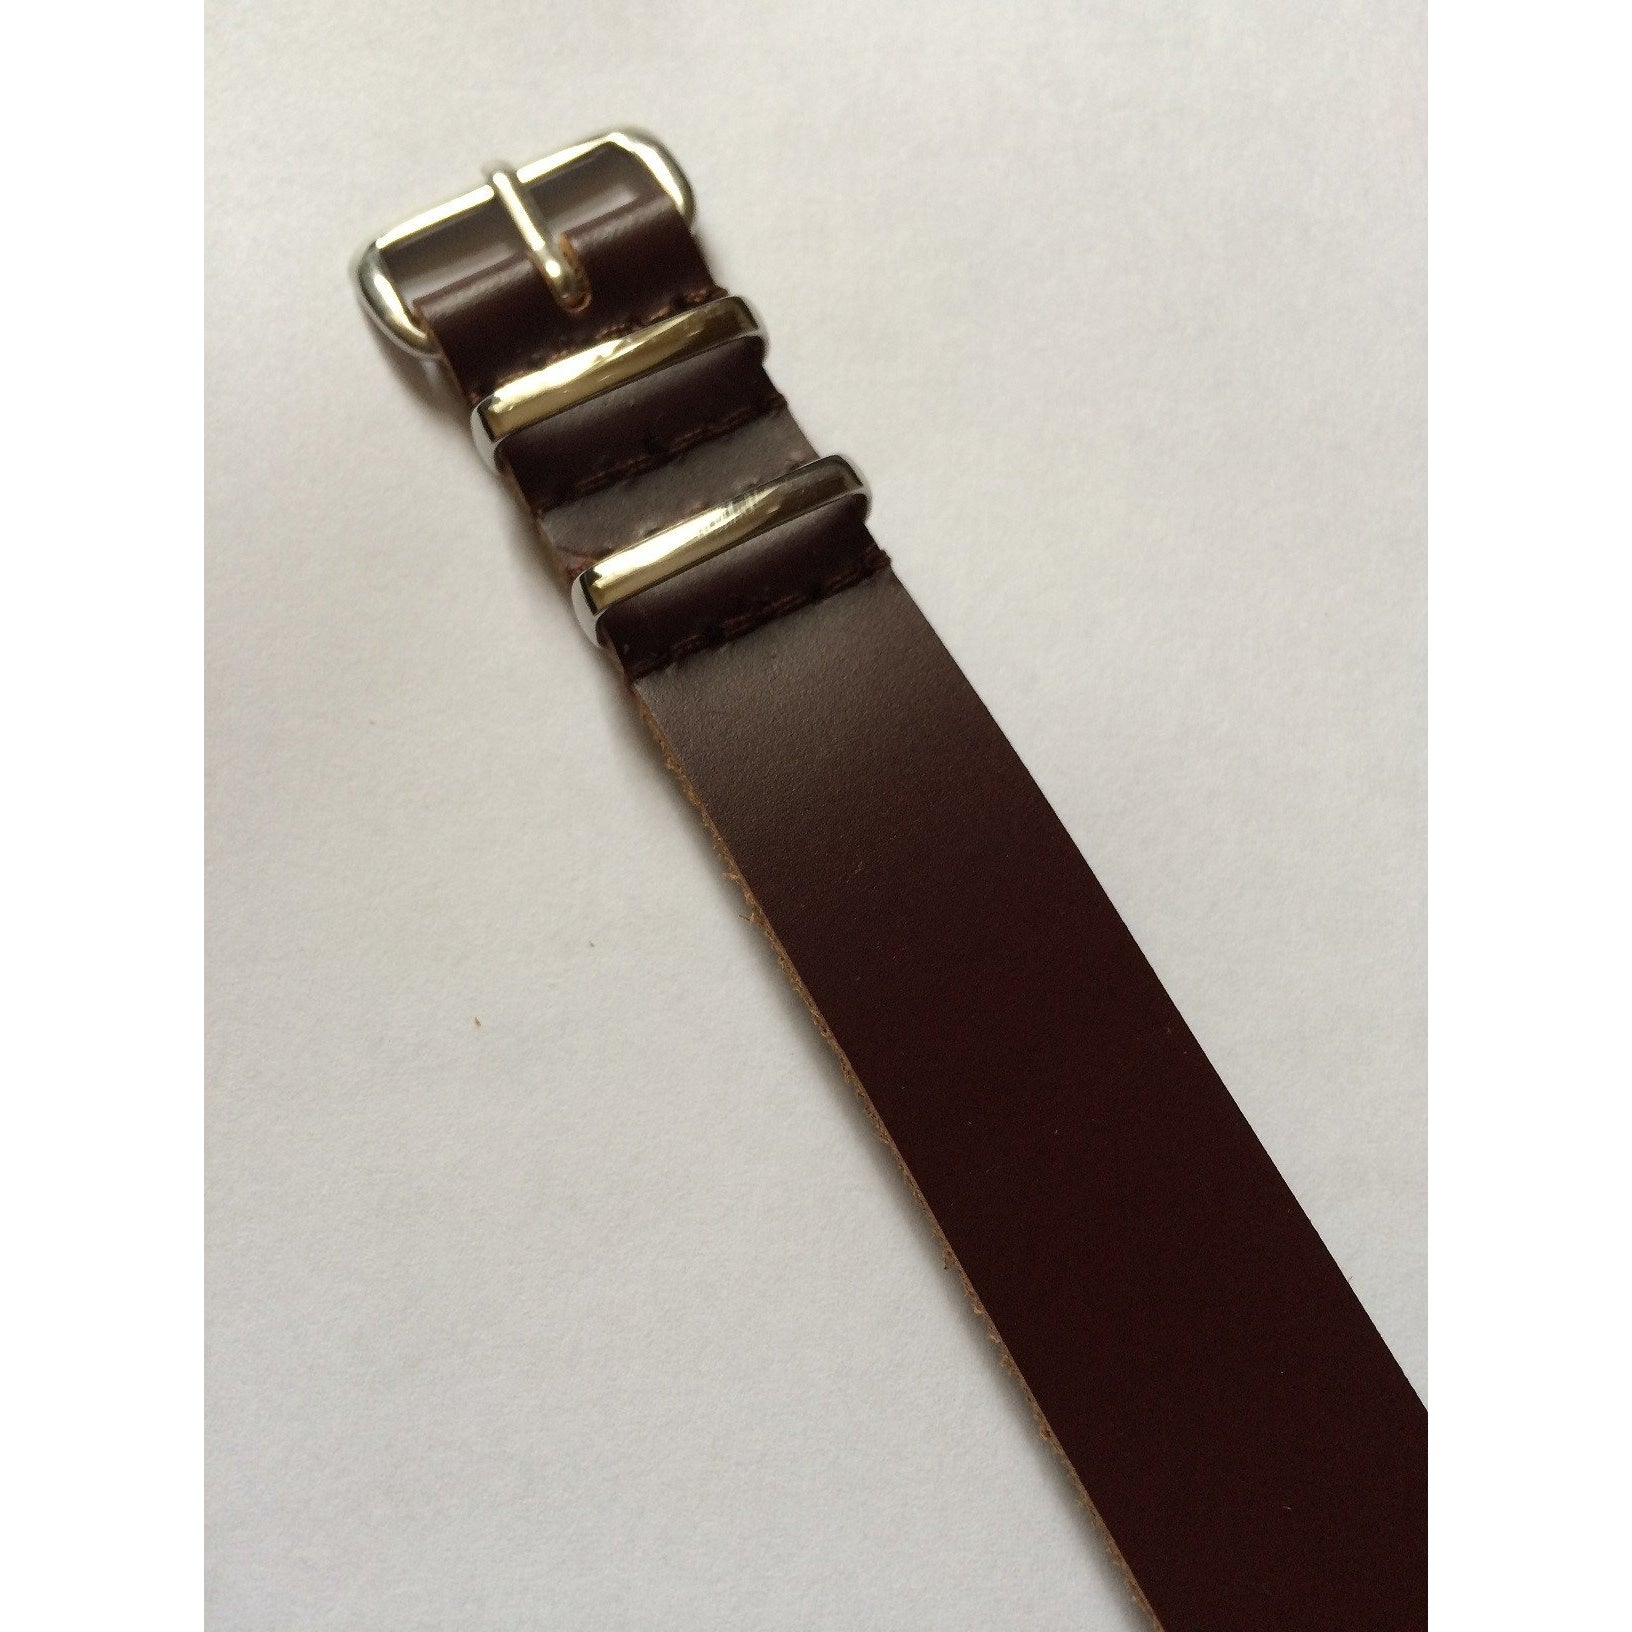 Brown Leather Nato Strap - Watchfinder General - UK suppliers of Russian Vostok Parnis Watches MWC G10  - 2